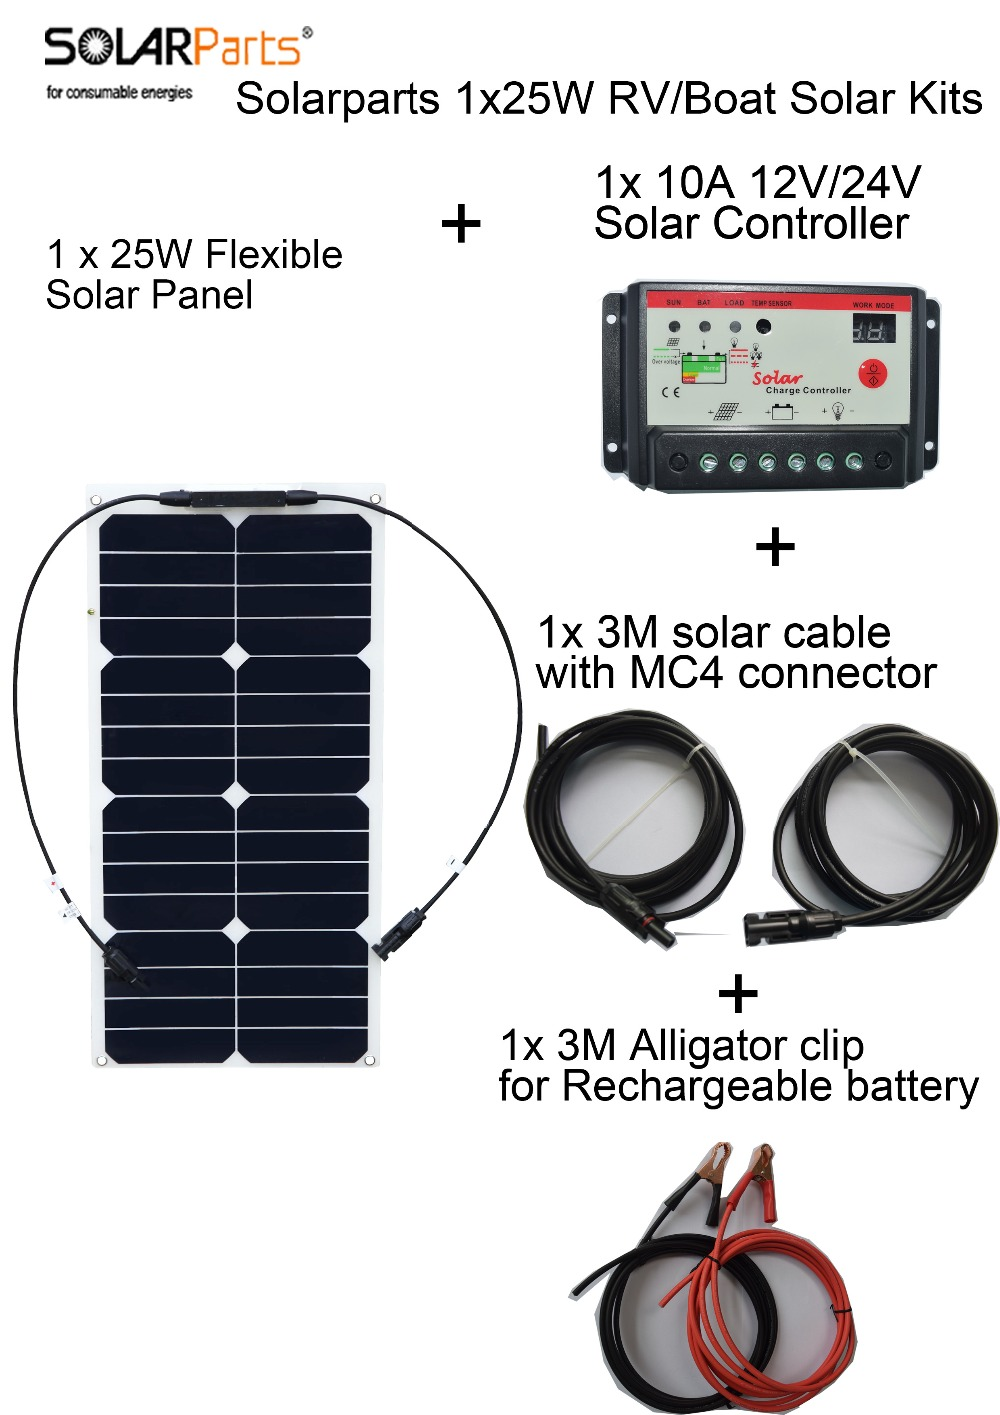 Solarparts  25w flexible solar panel system solar cell controller cable for yacht/RV/light/12v battery solar energy generation 200w 2x100w mono flexible solar panel solar module energy roof camper rv yacht solar generators